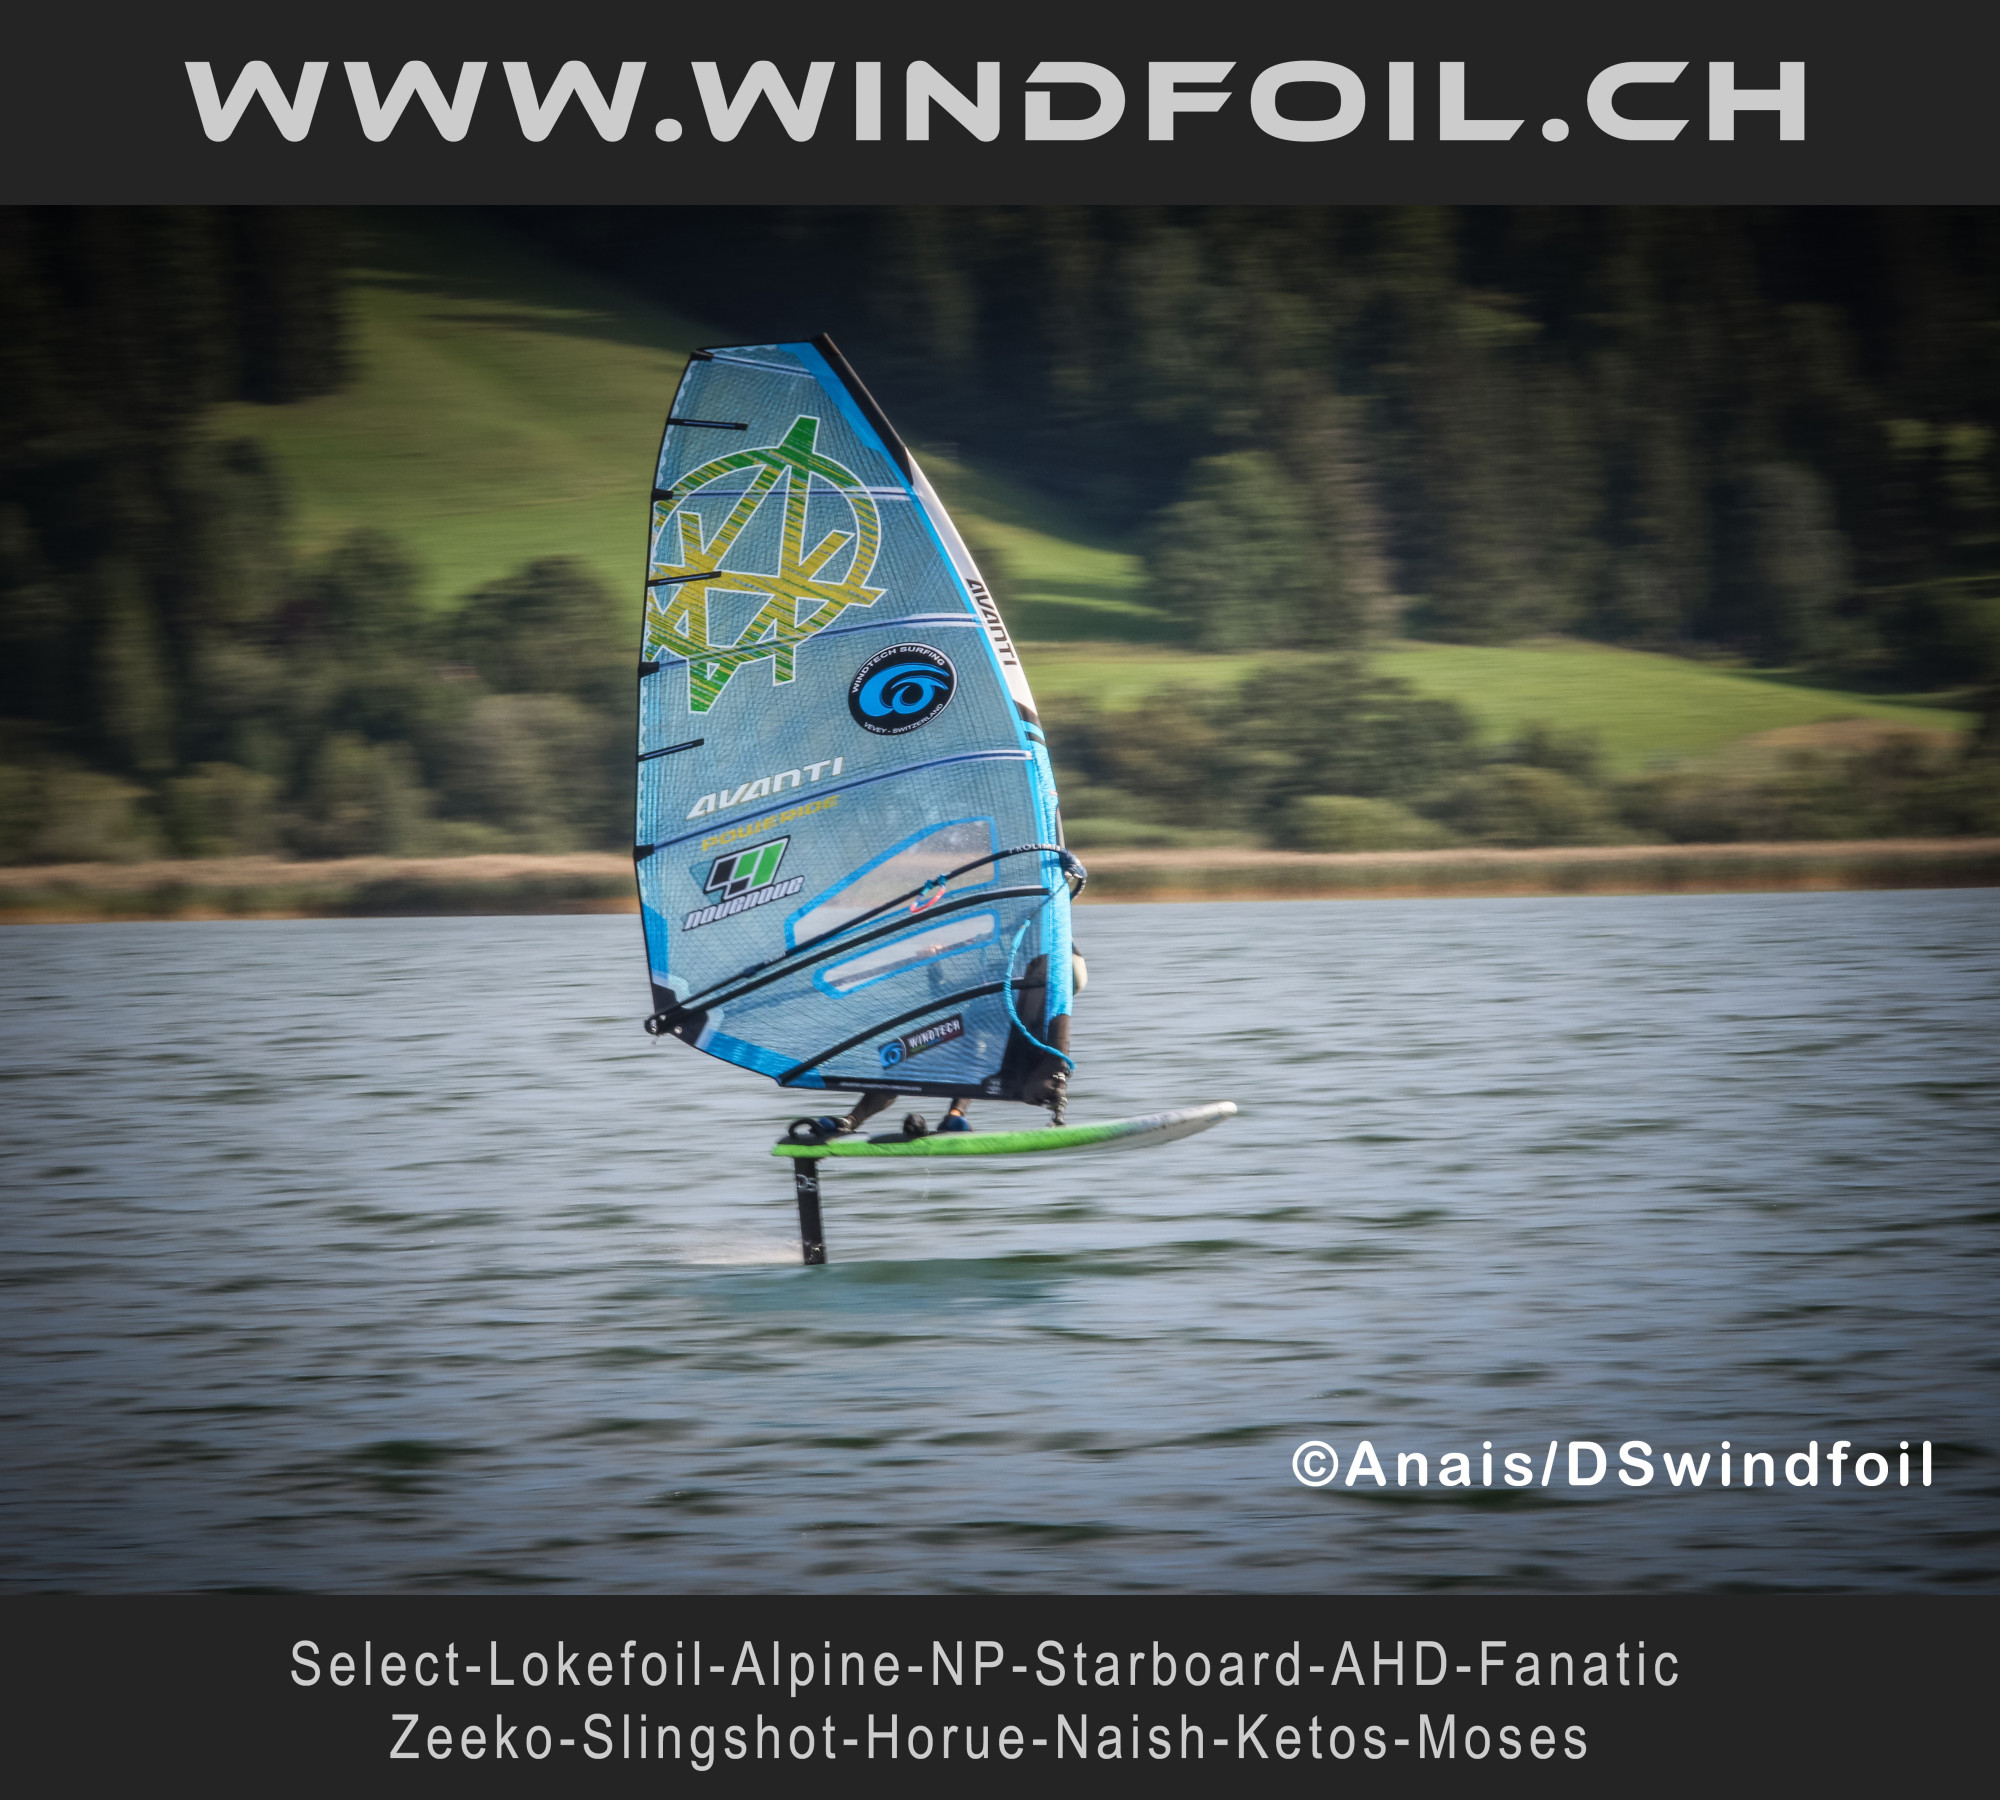 windfoil.ch